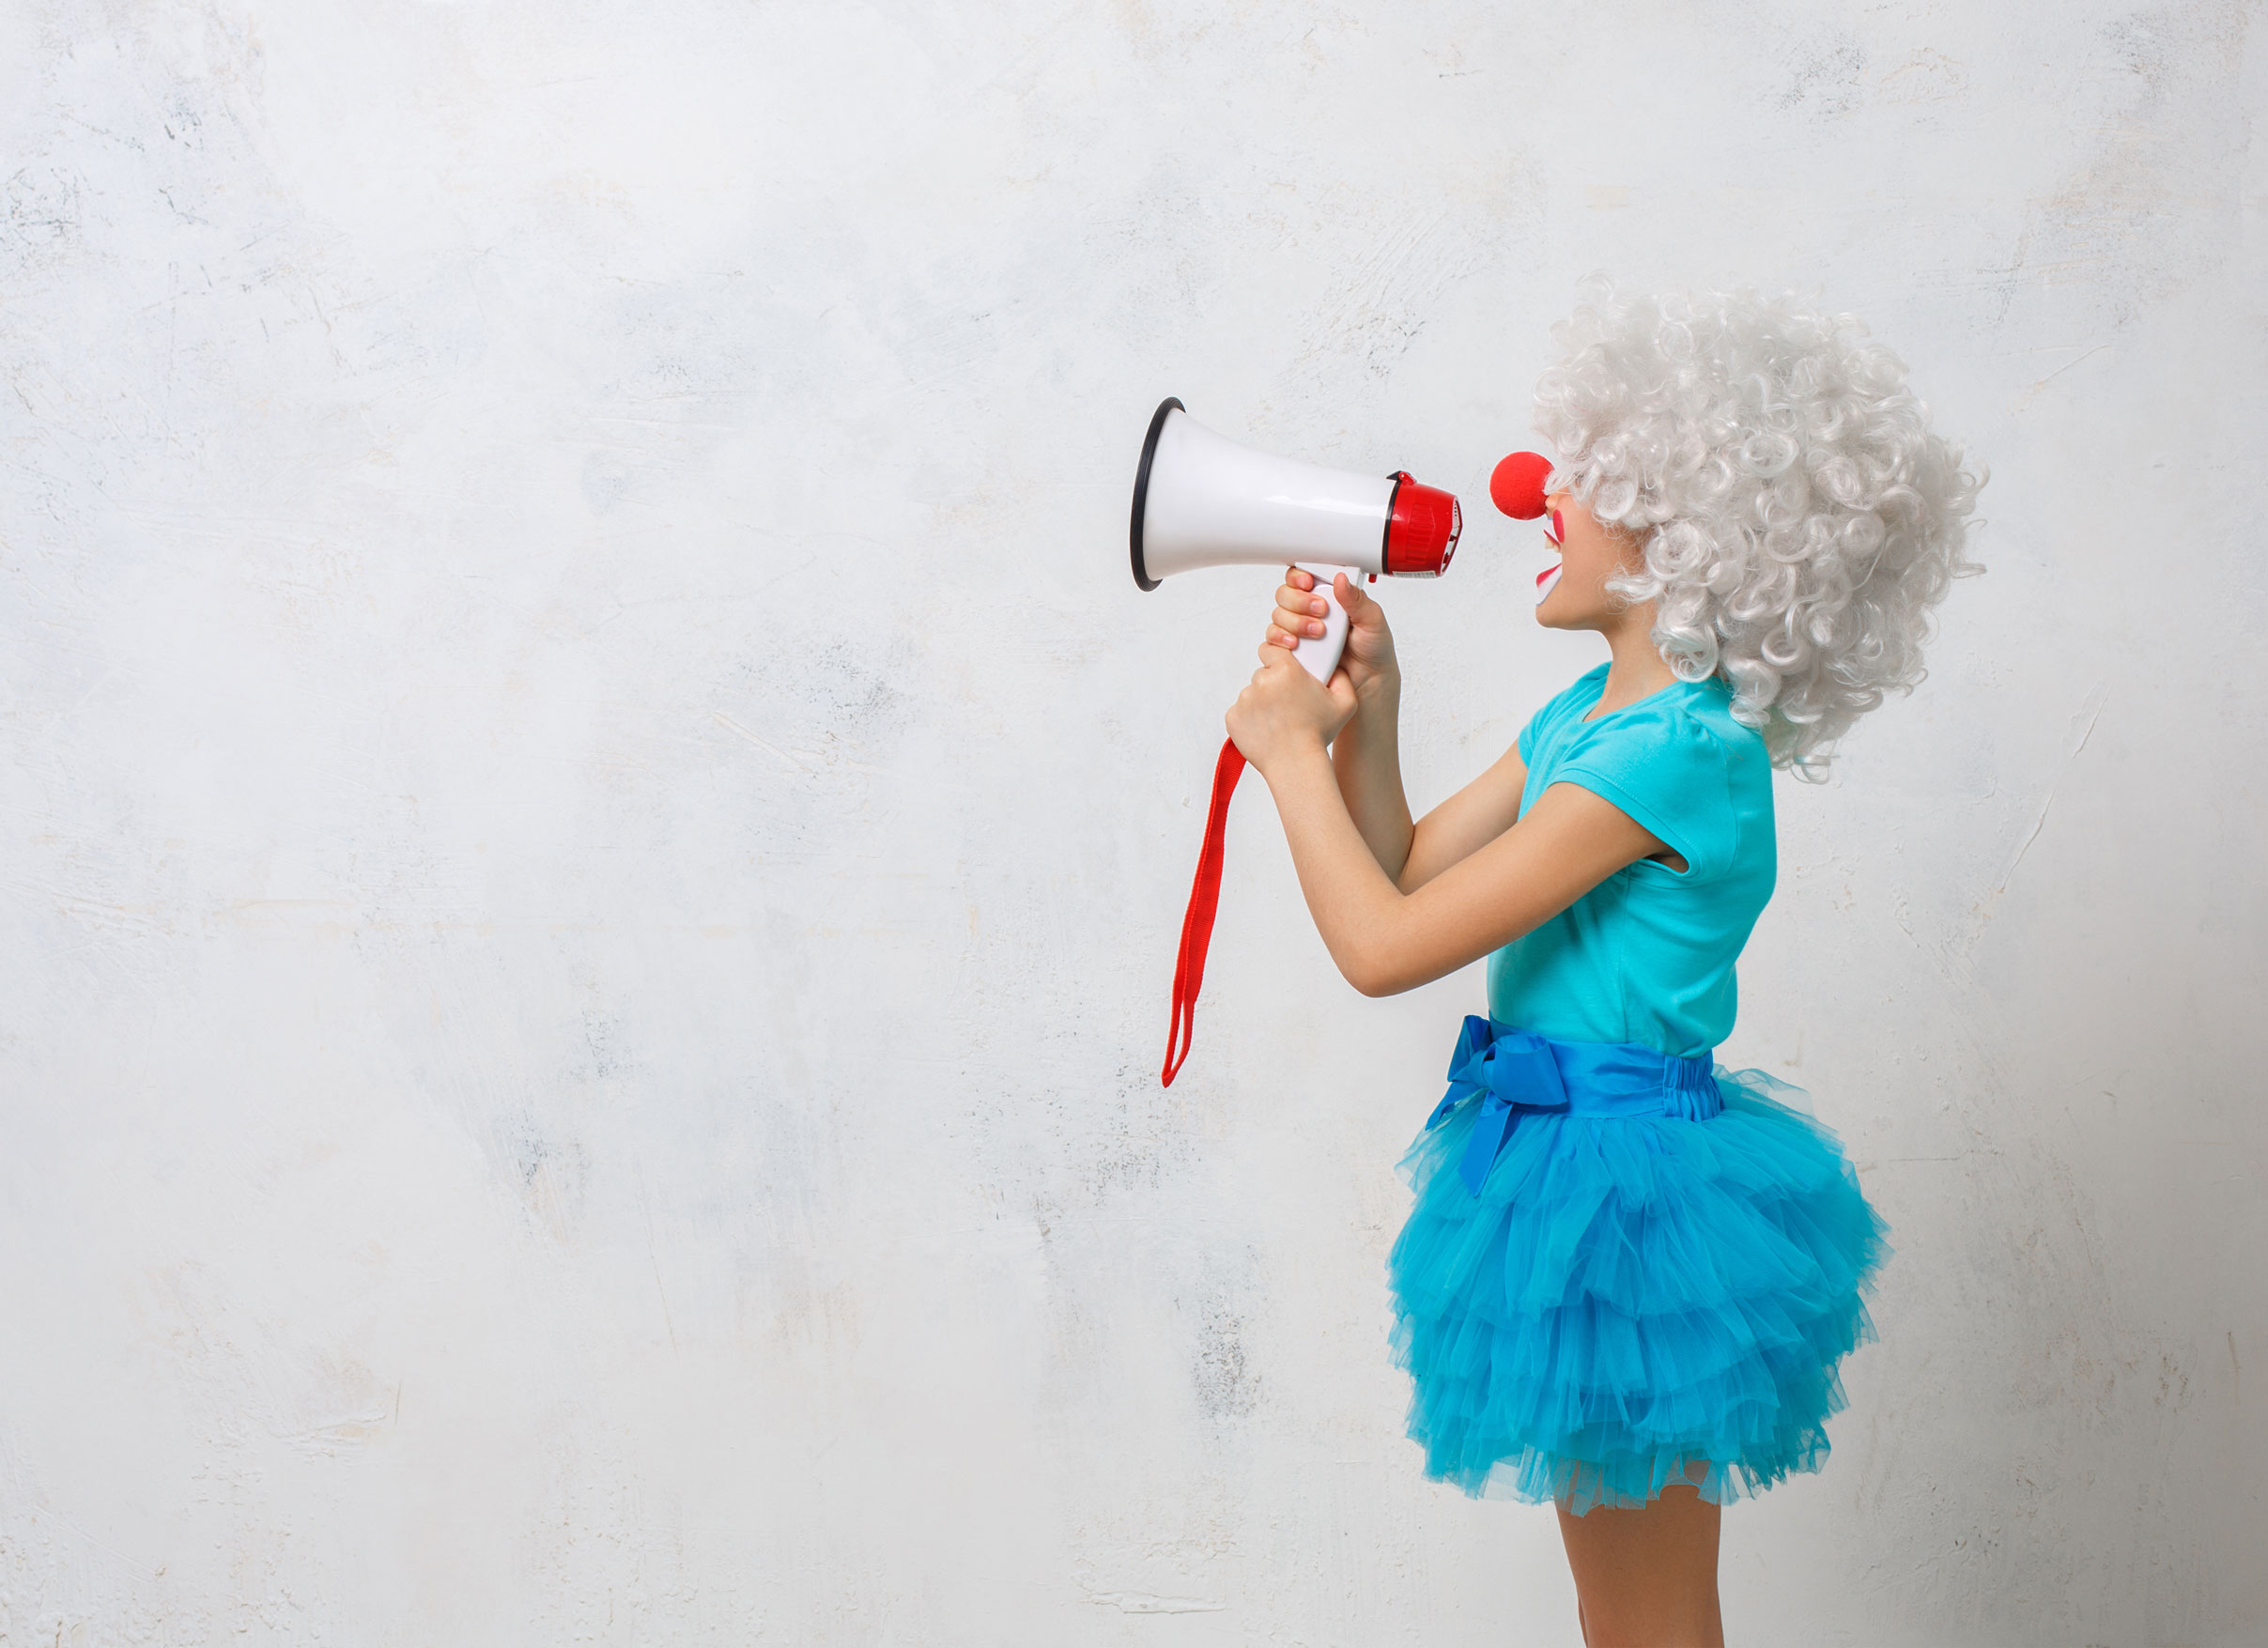 Side view of child in grey wig and cyan outfit speaking into a megaphone